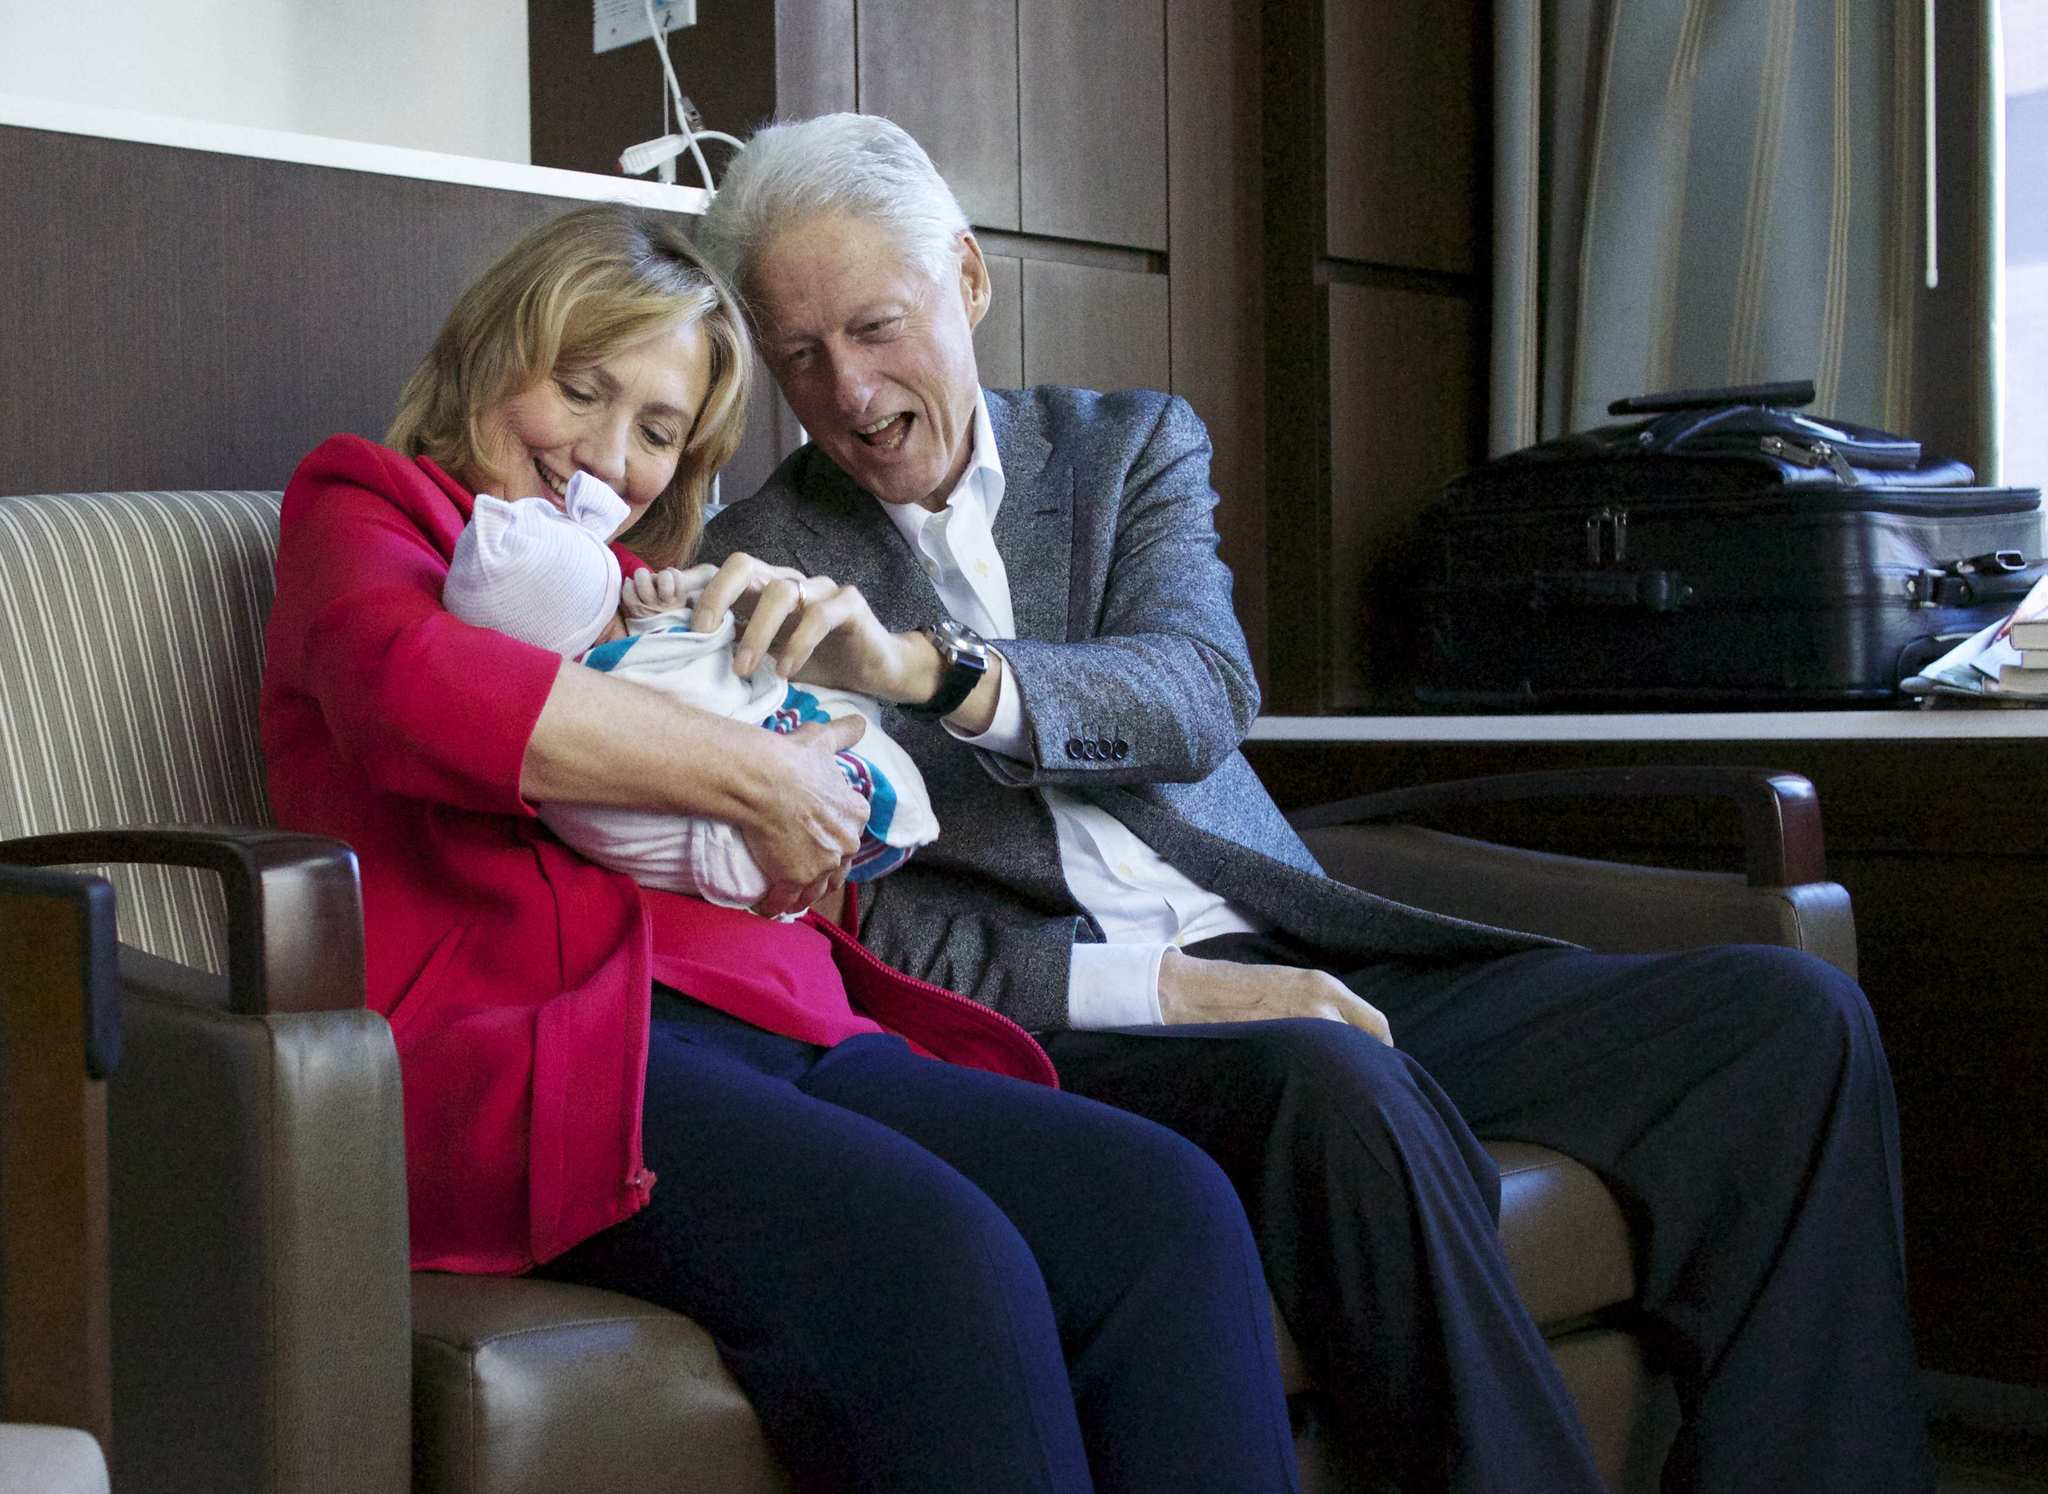 Former President Bill Clinton and his wife, former Secretary of State Hillary Clinton, hold their granddaughter Charlotte Clinton Mezvinsky after their daughter Chelsea Clinton gave birth in New York.